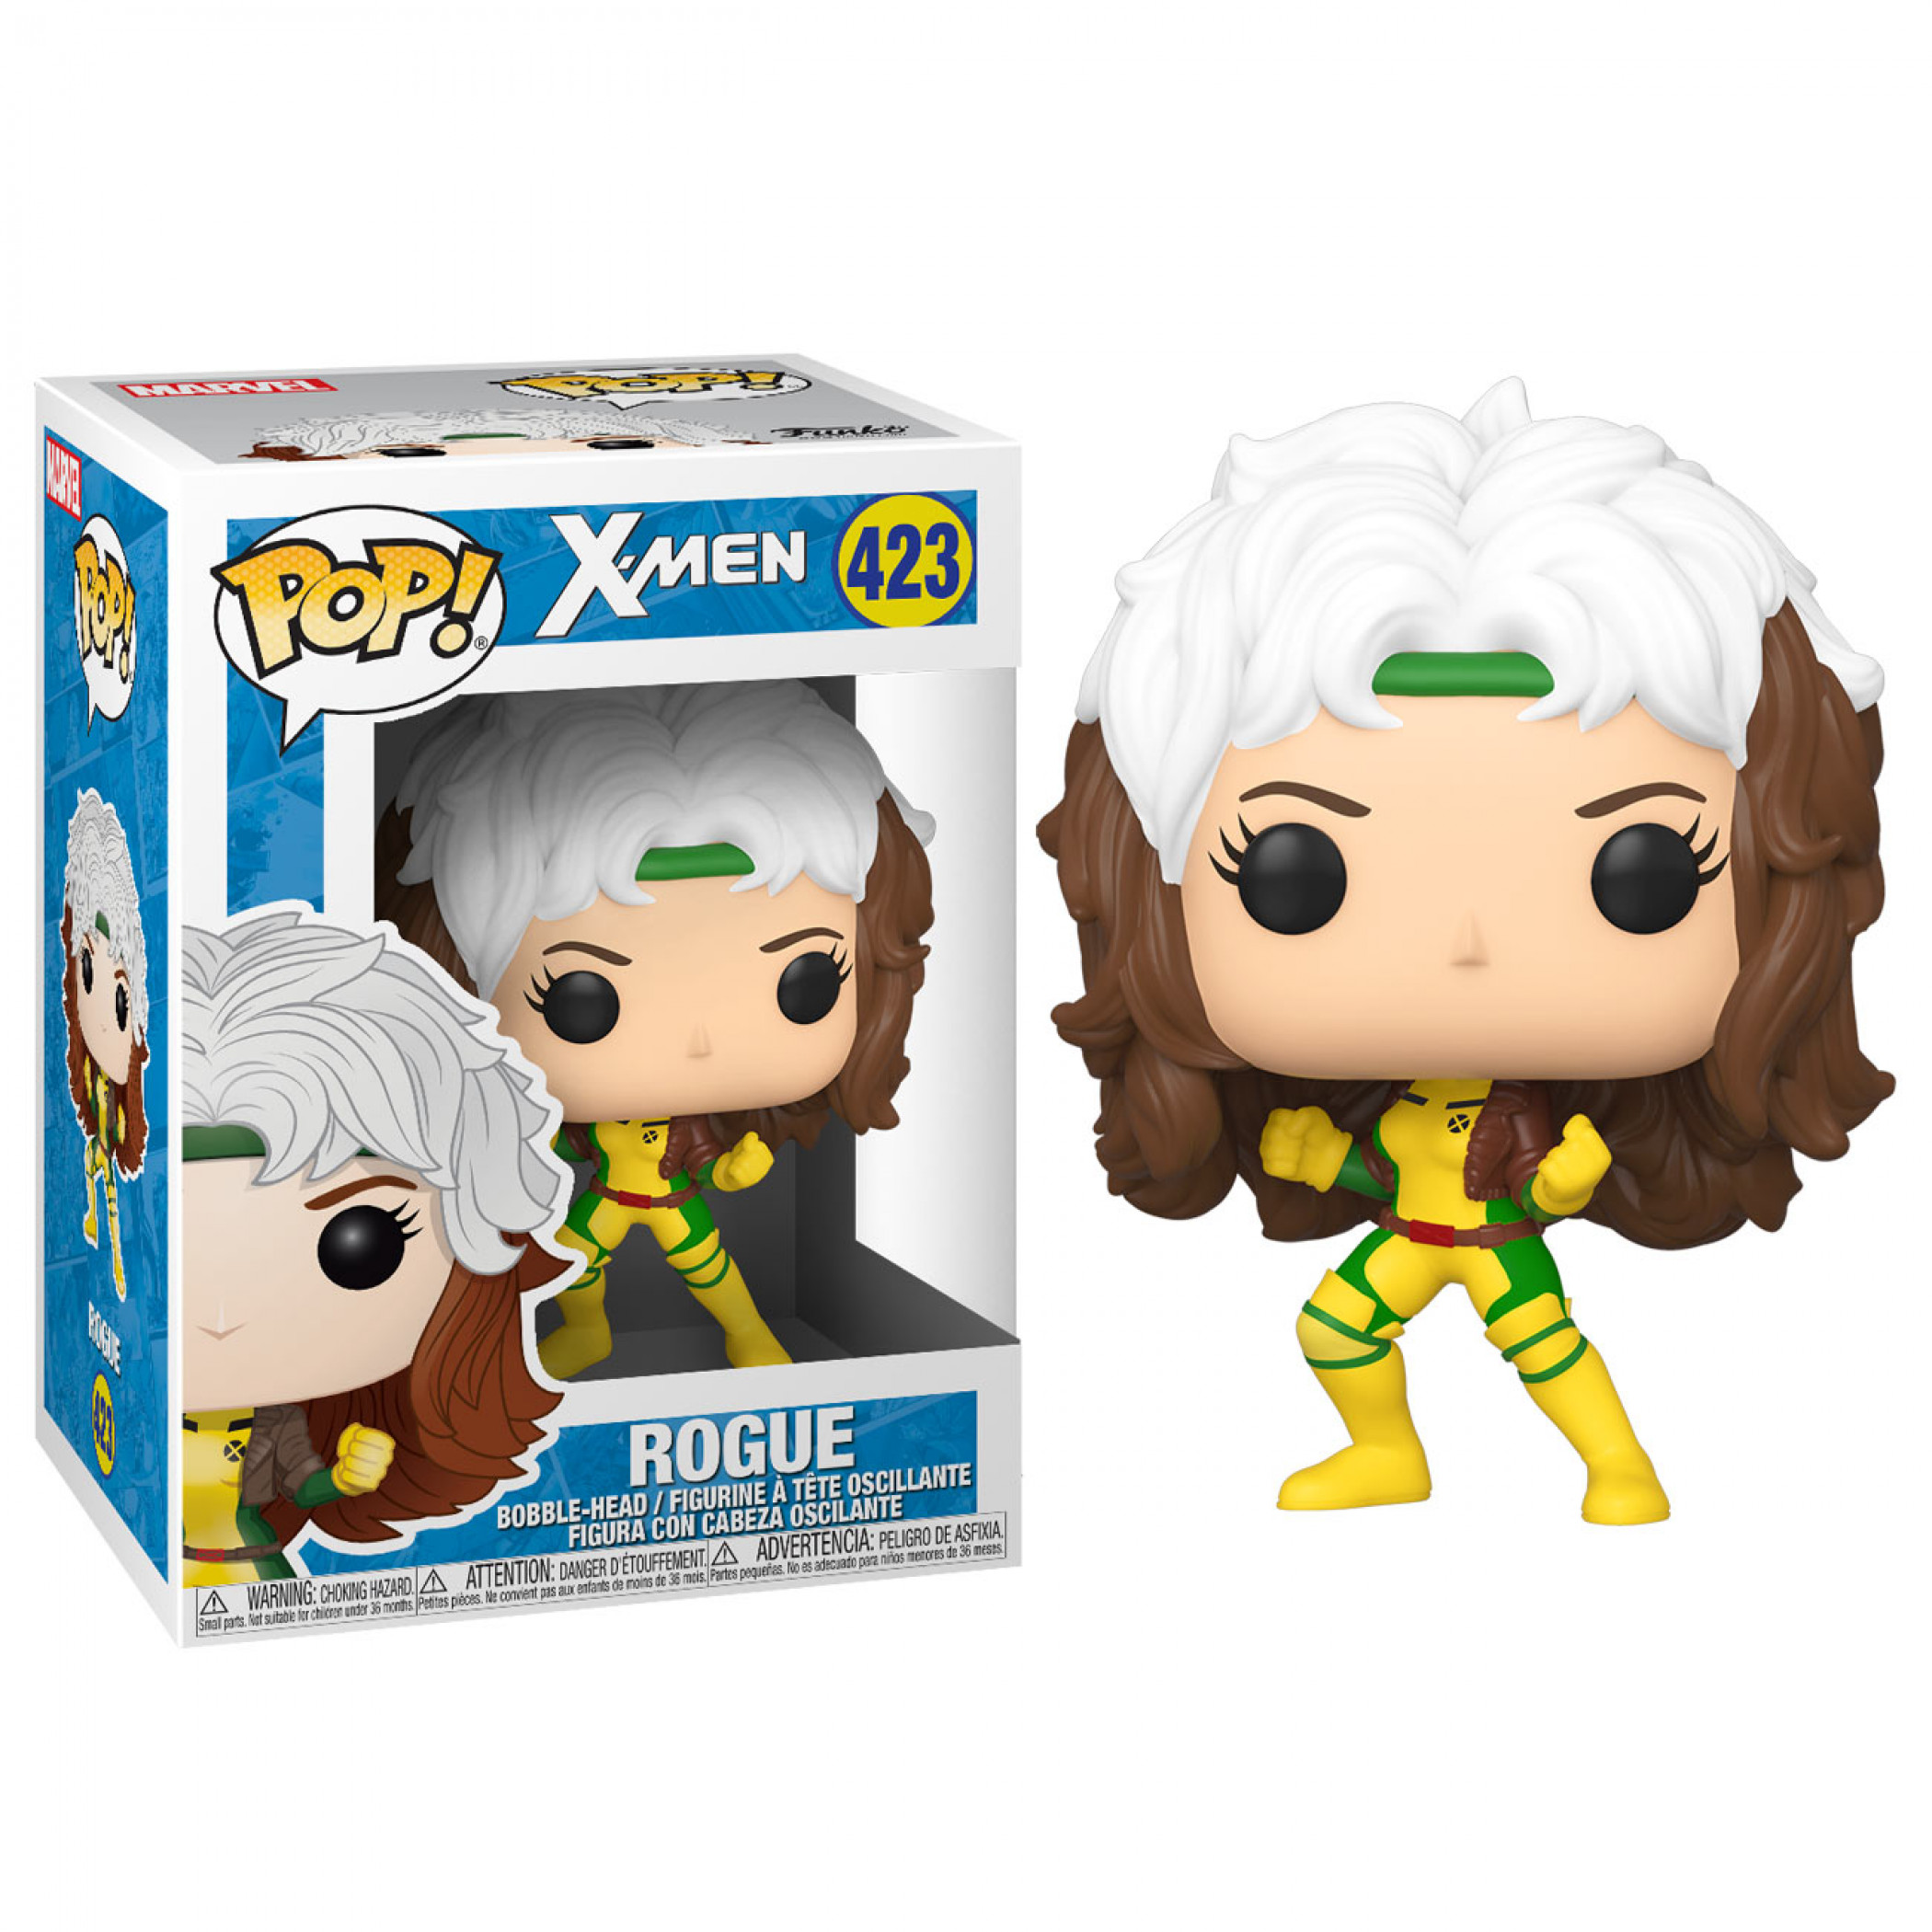 Marvel: X-Men Classic - Rogue Funko Pop! Figure